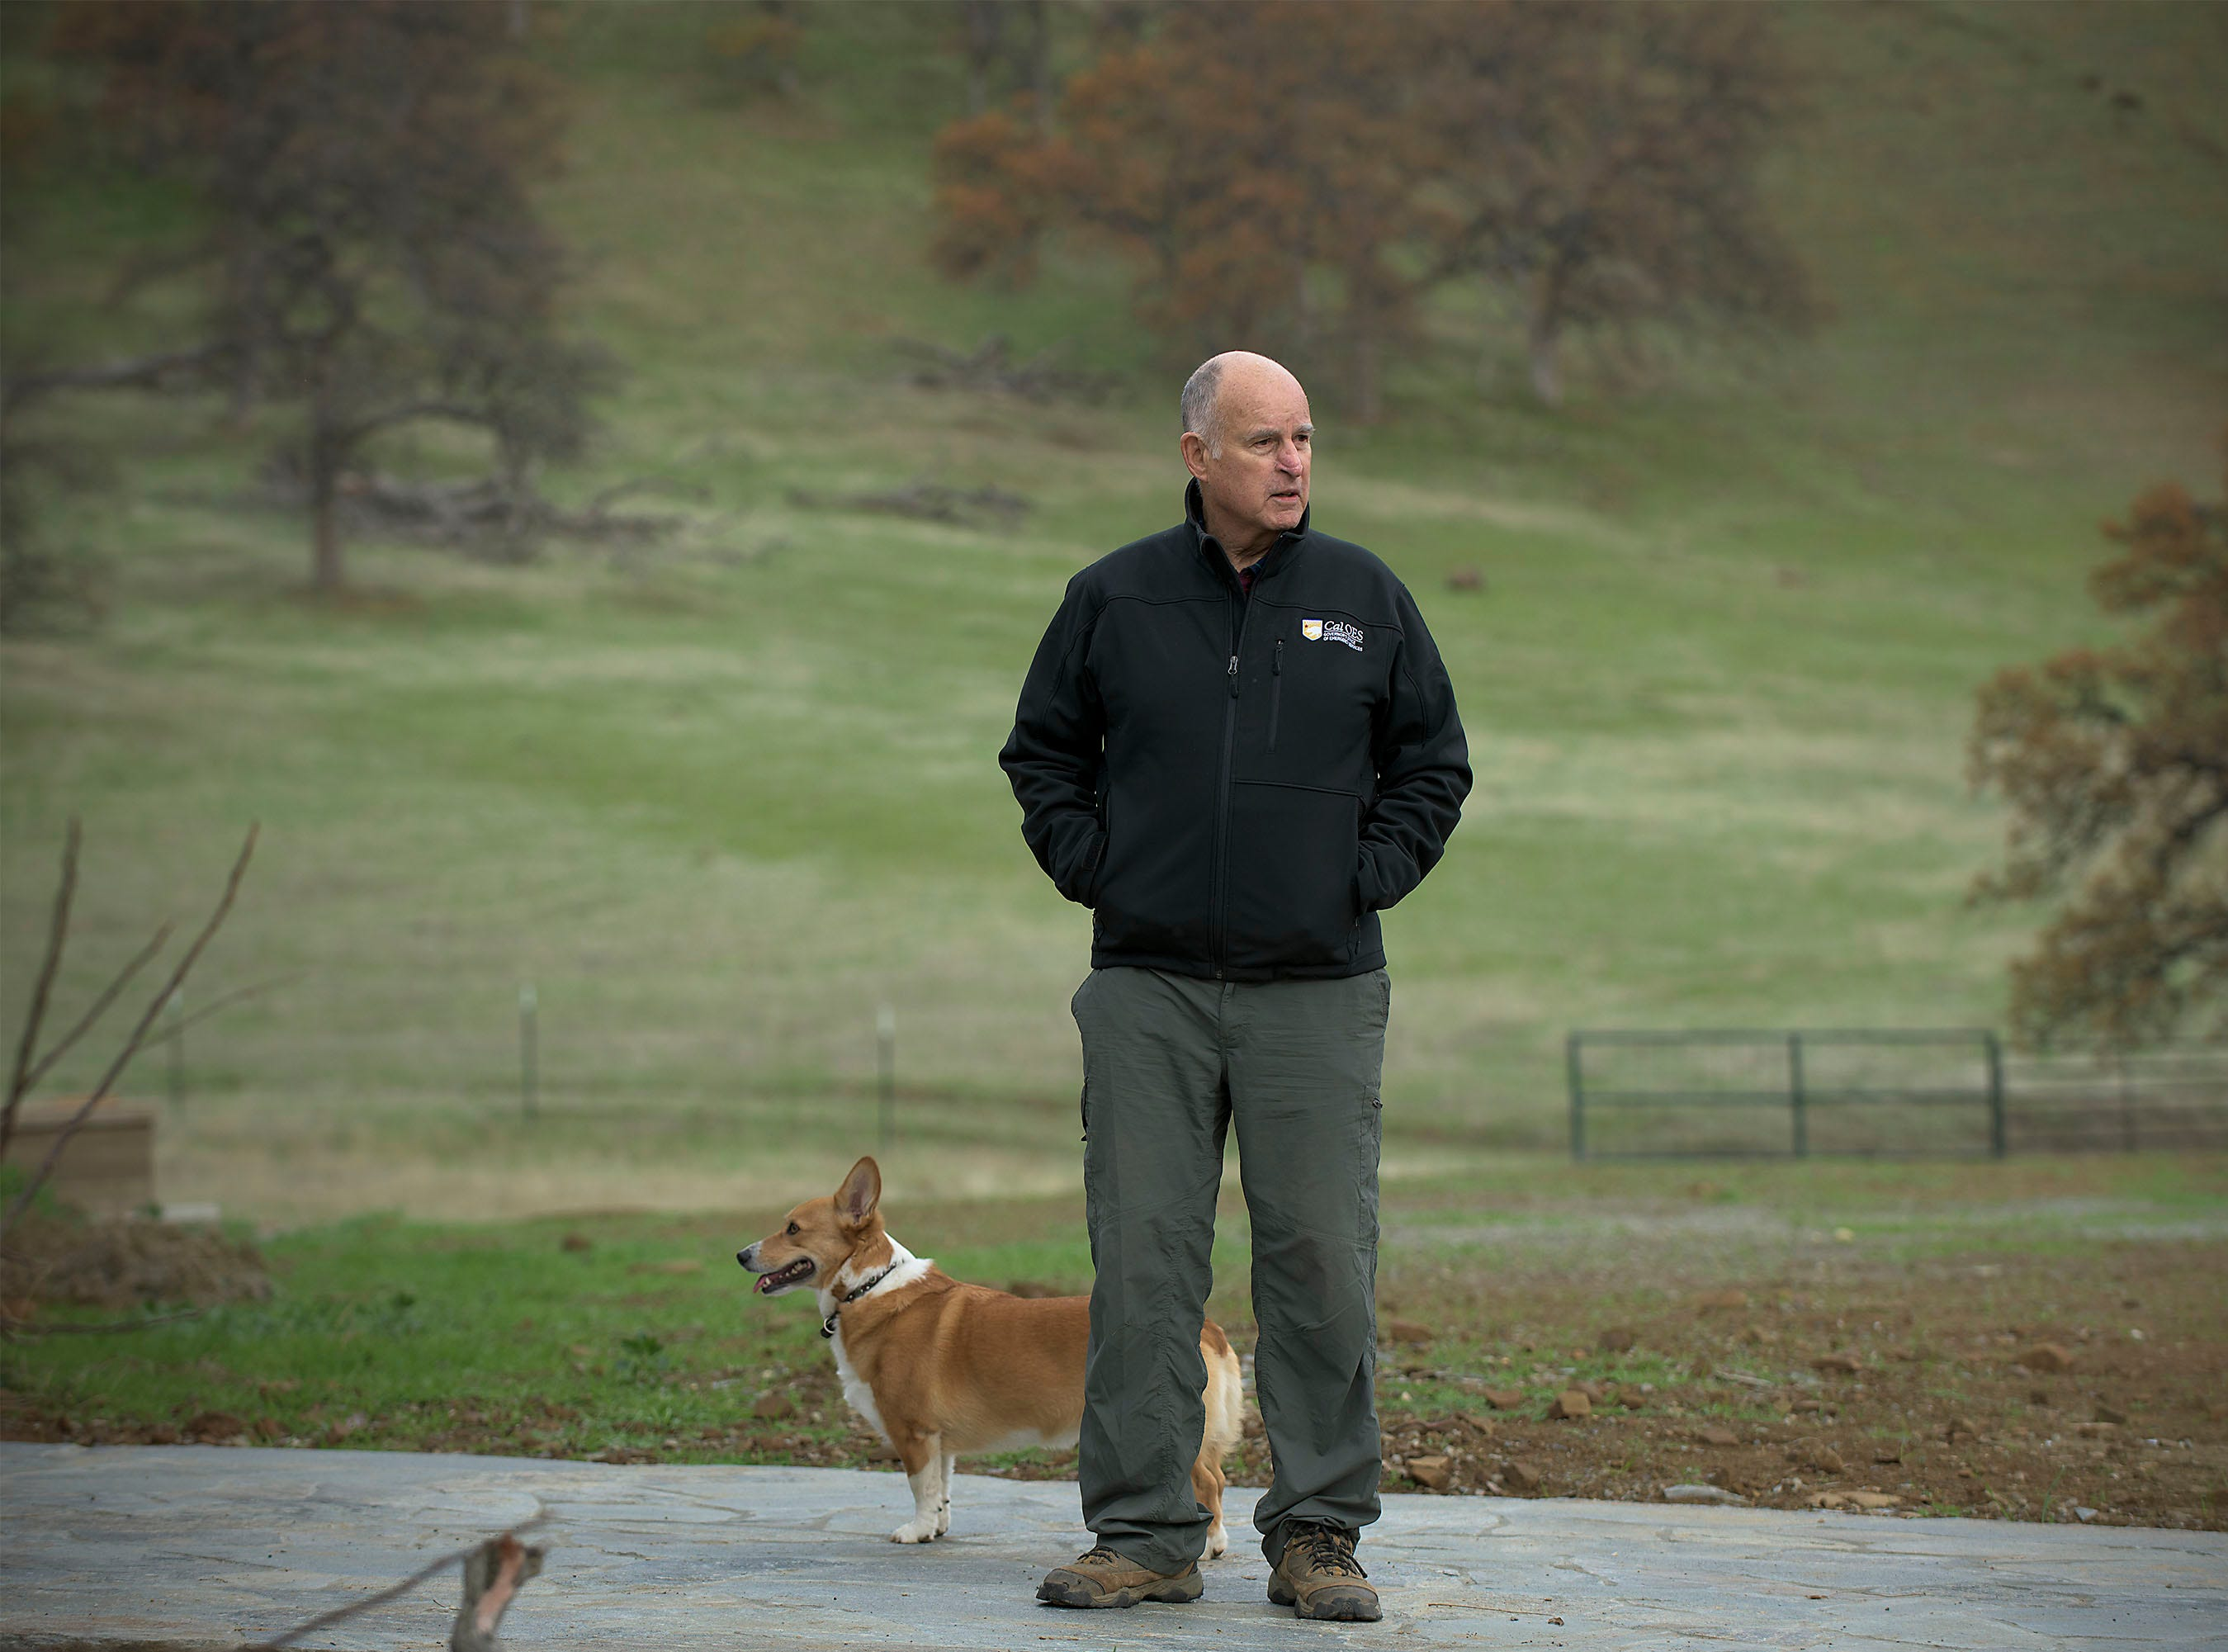 California Gov. Jerry Brown spends time with his dog, Colusa, at his ranch home near Williams. Brown leaves office Jan. 7 after a record 16 years as governor.